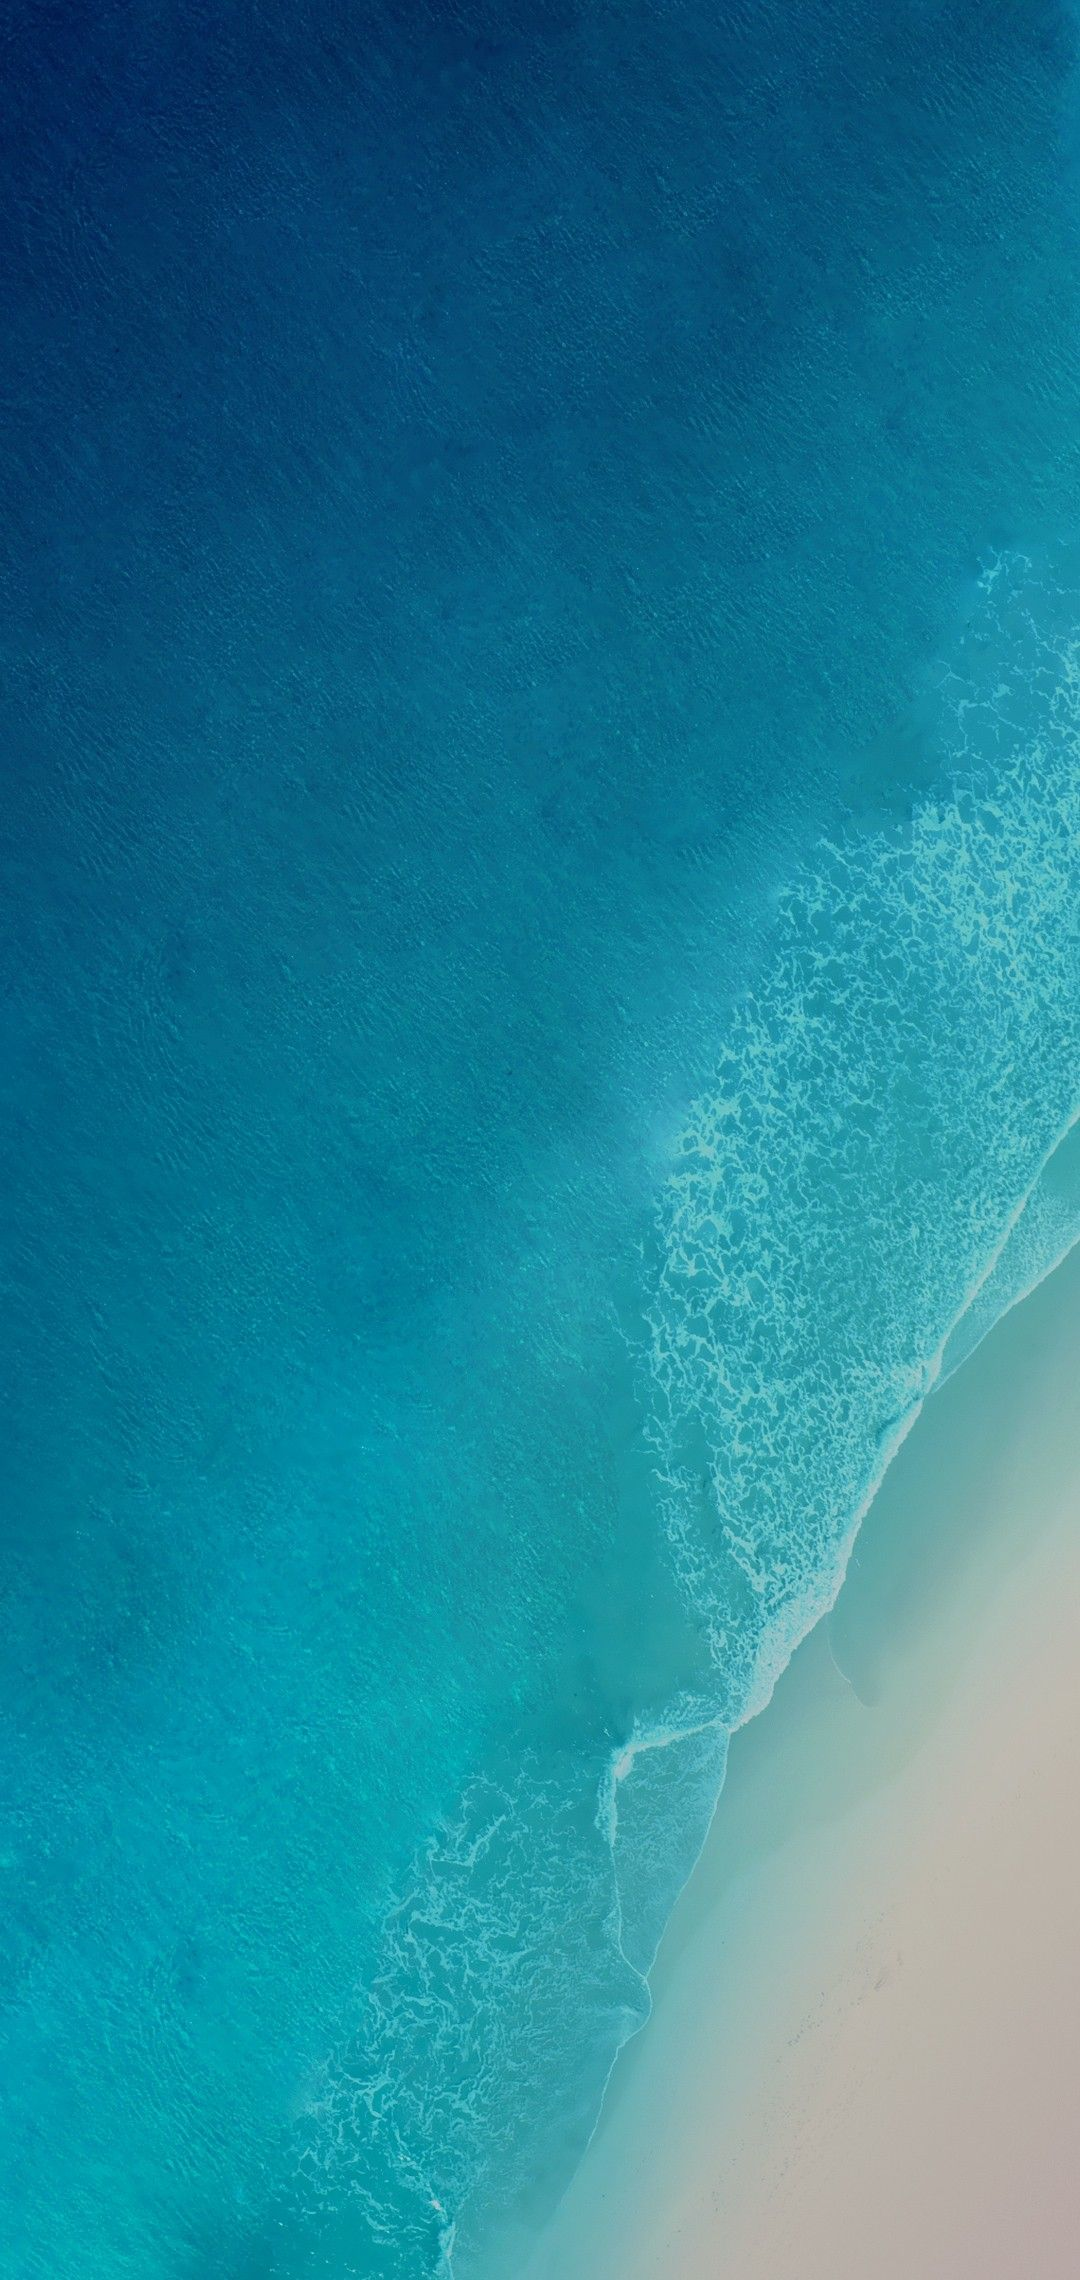 iOS 12 iPhone X Aqua blue Water ocean apple wallpaper 1080x2280